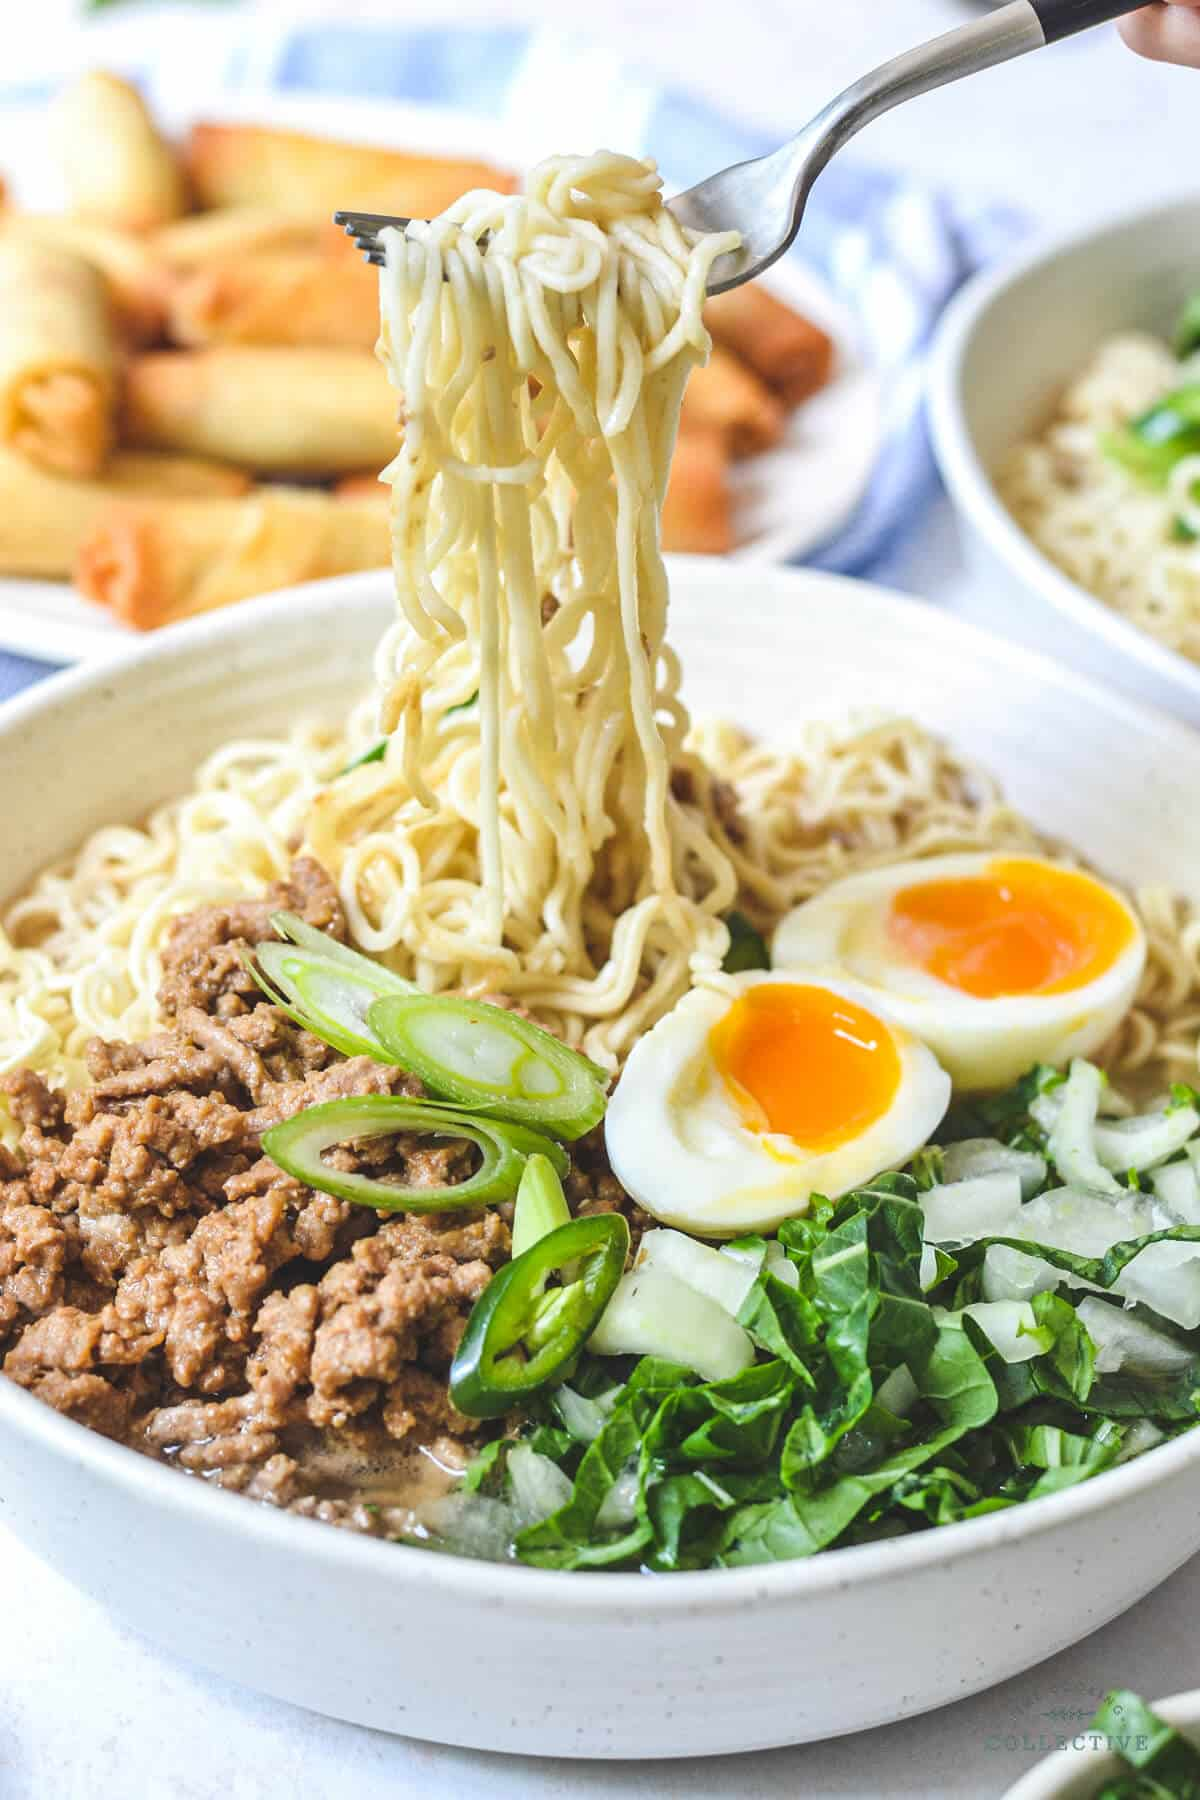 a fork holding ramen noodles above a bowl containing runny eggs, miso pork, soup and green vegetables